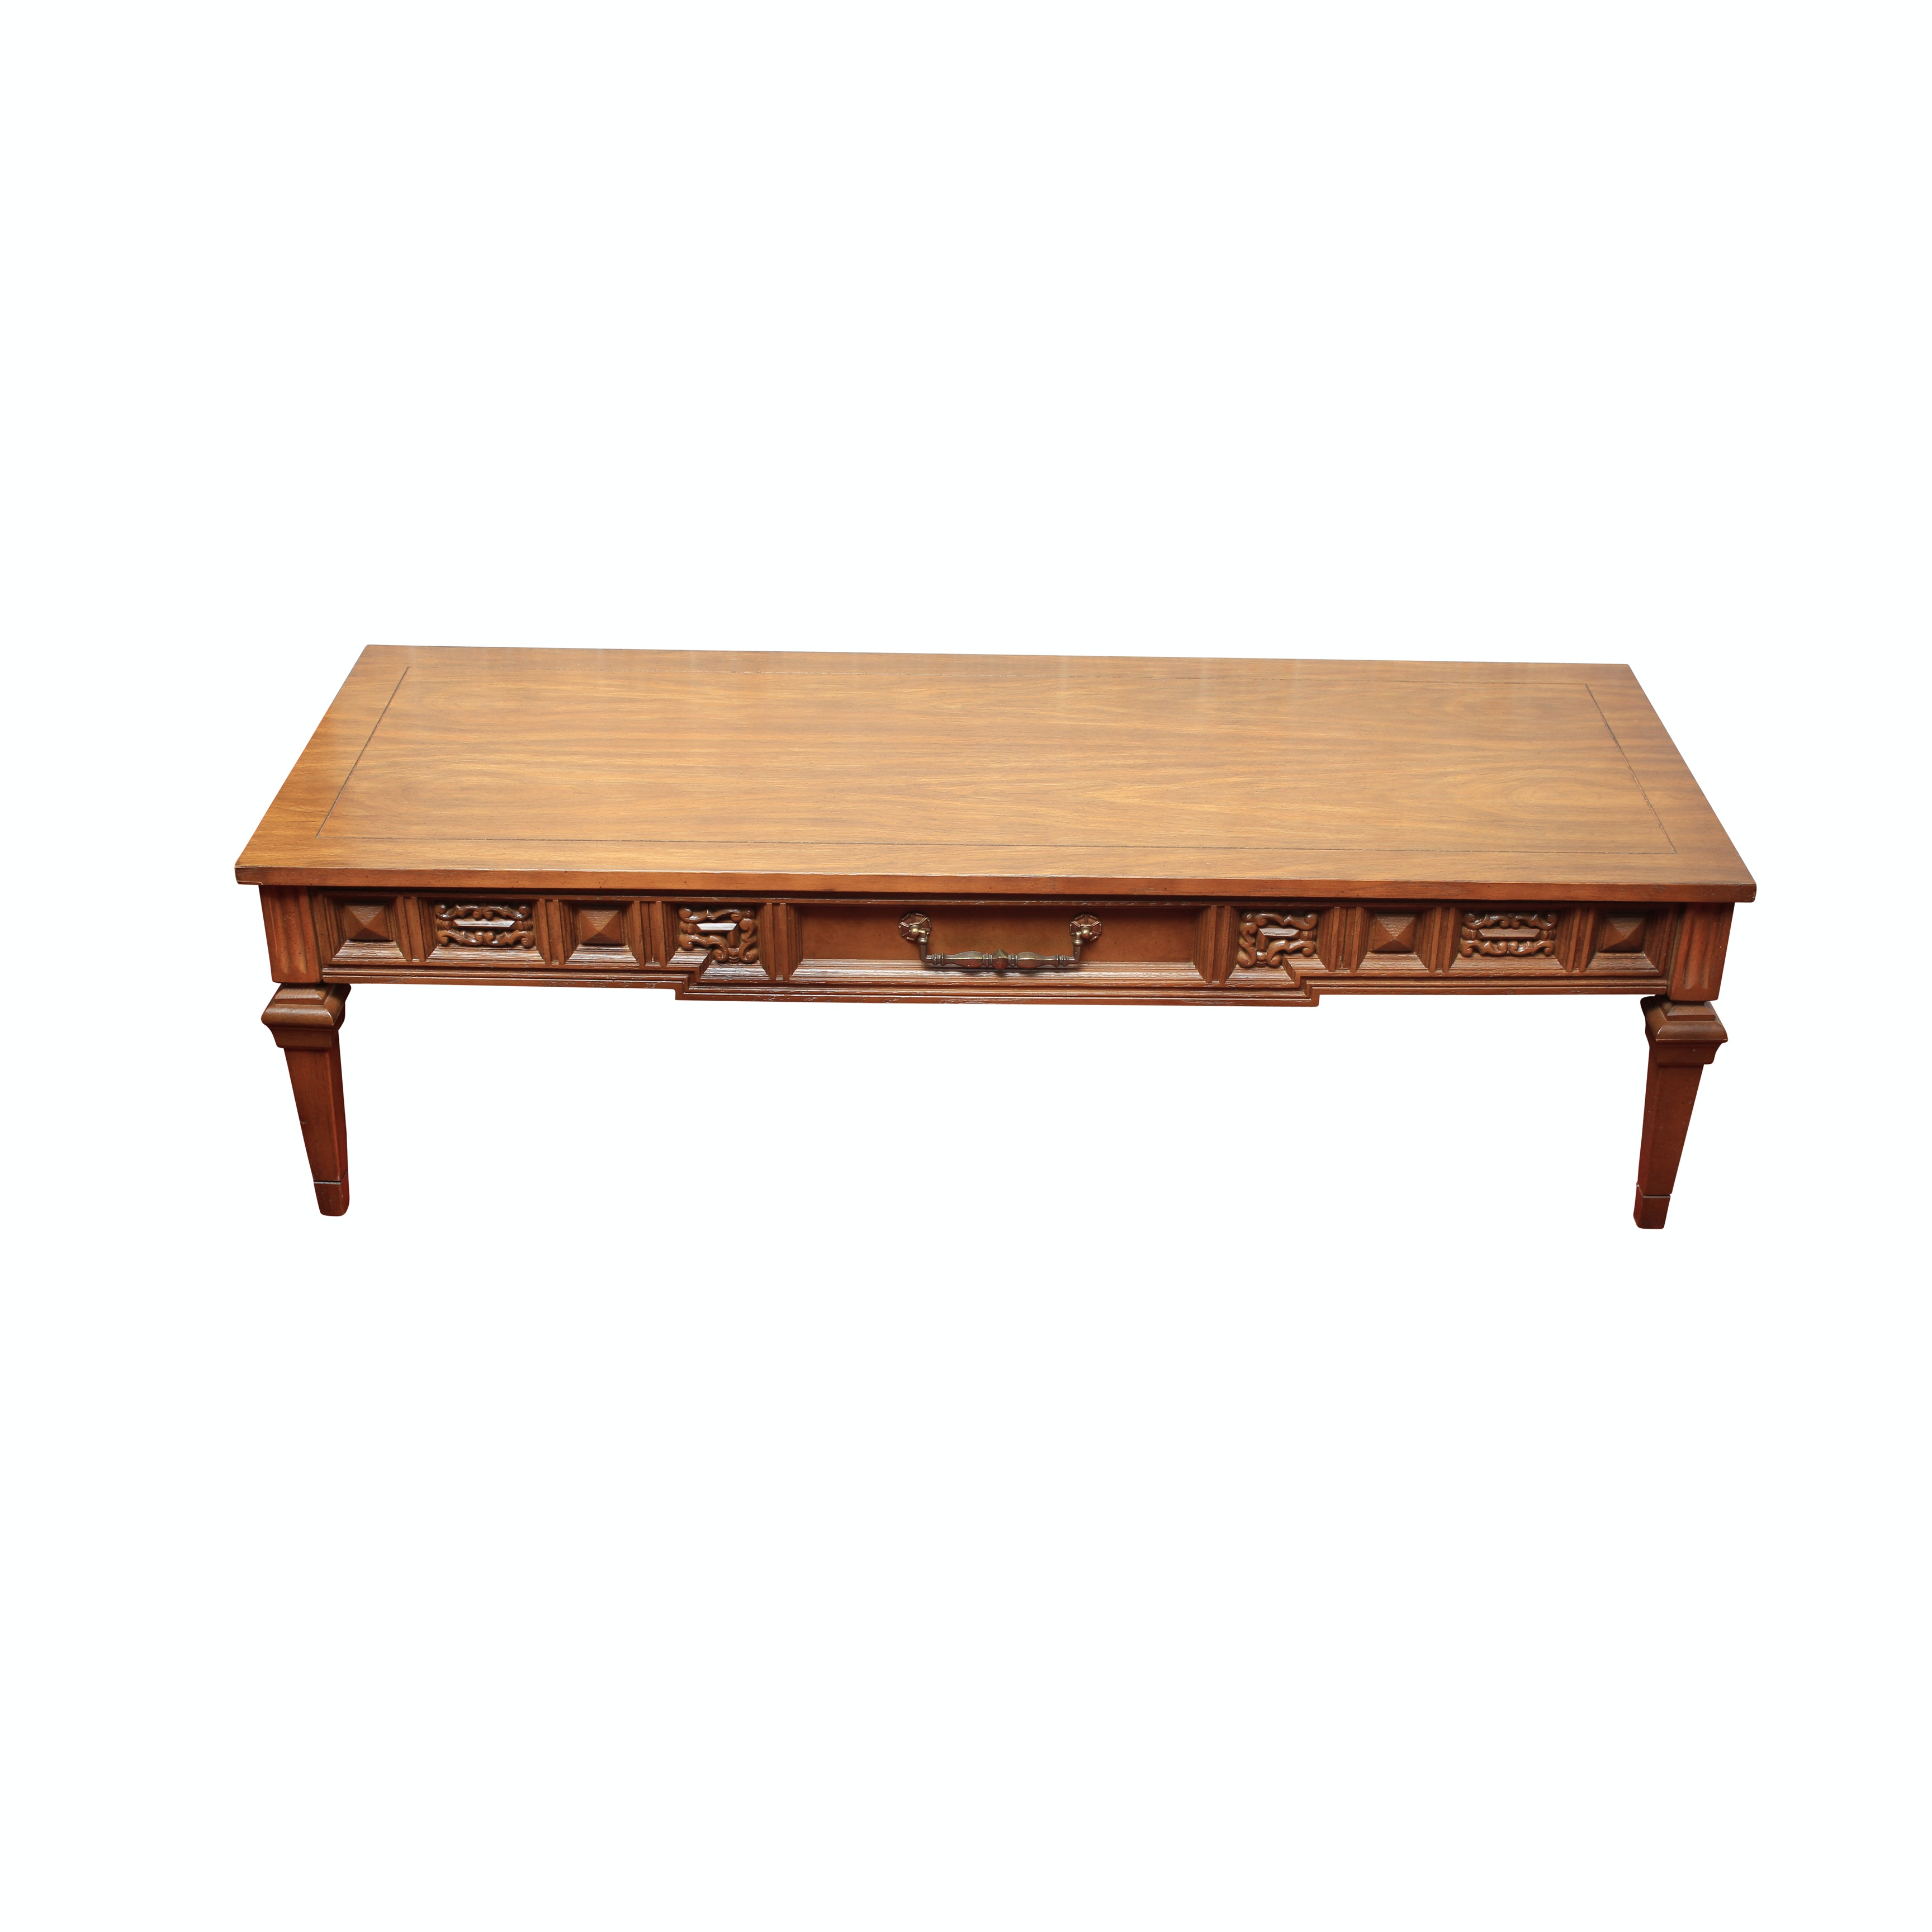 Charmant Vintage Mediterranean Style Coffee Table ...